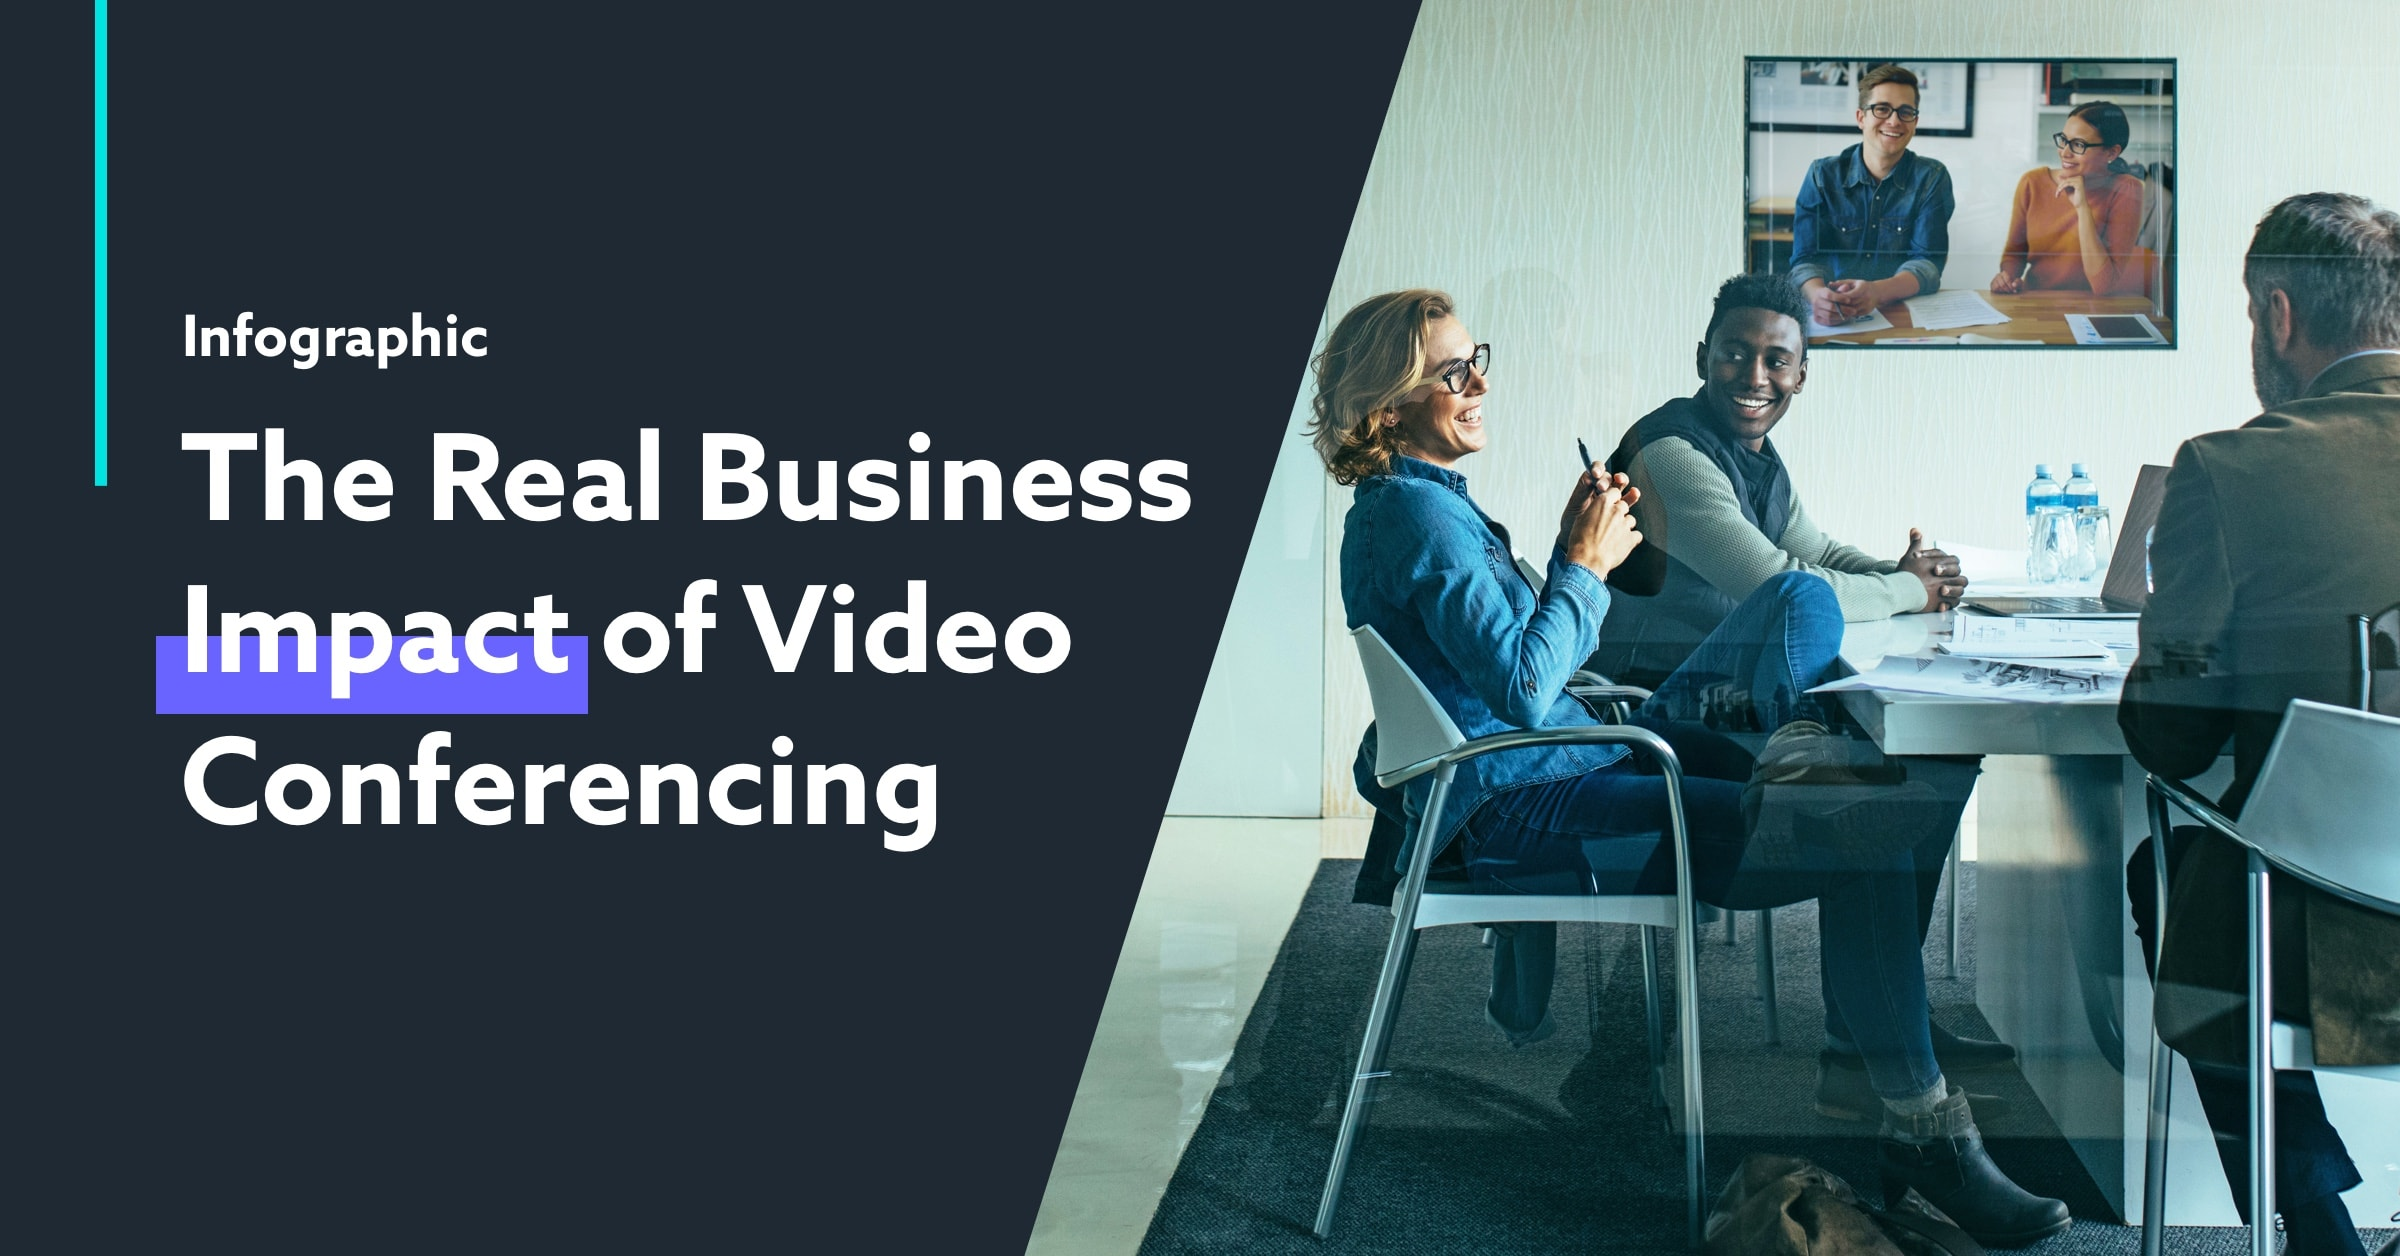 Infographic The Real Business Impact of Video Conferencing Featured